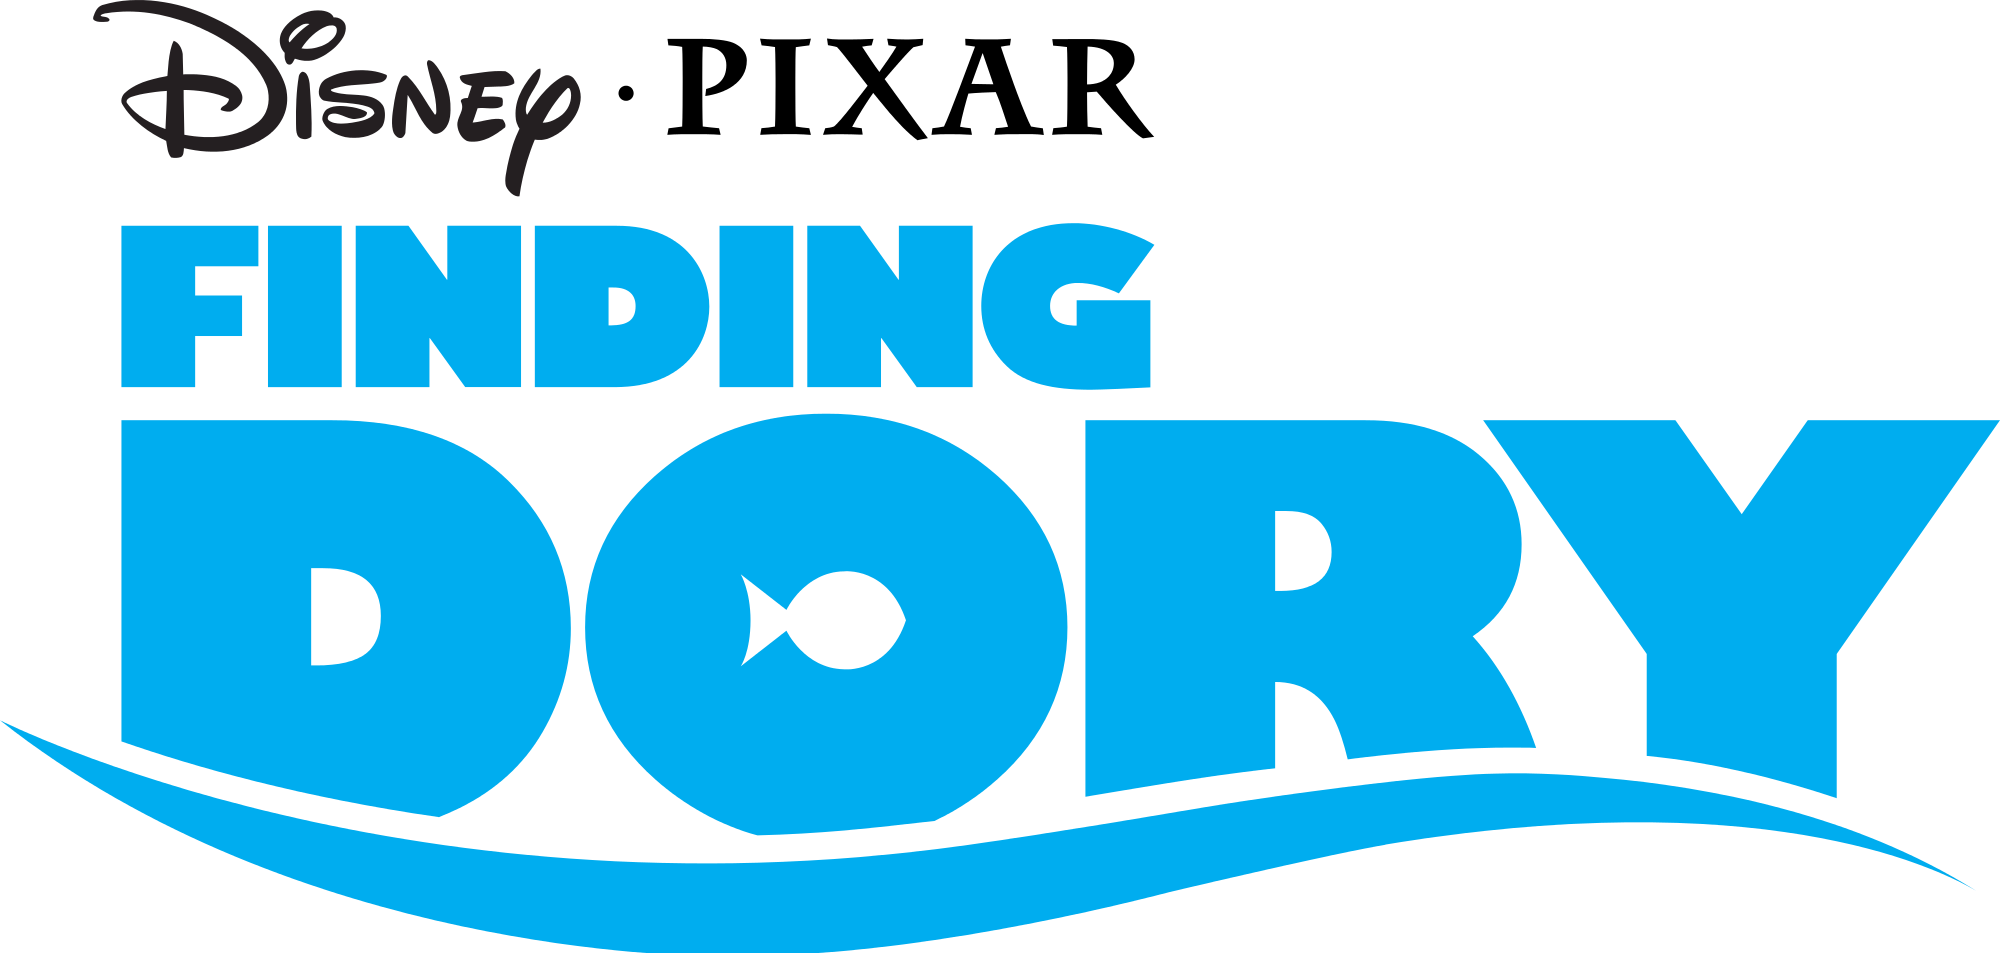 Finding dory logo png. File svg wikimedia commons